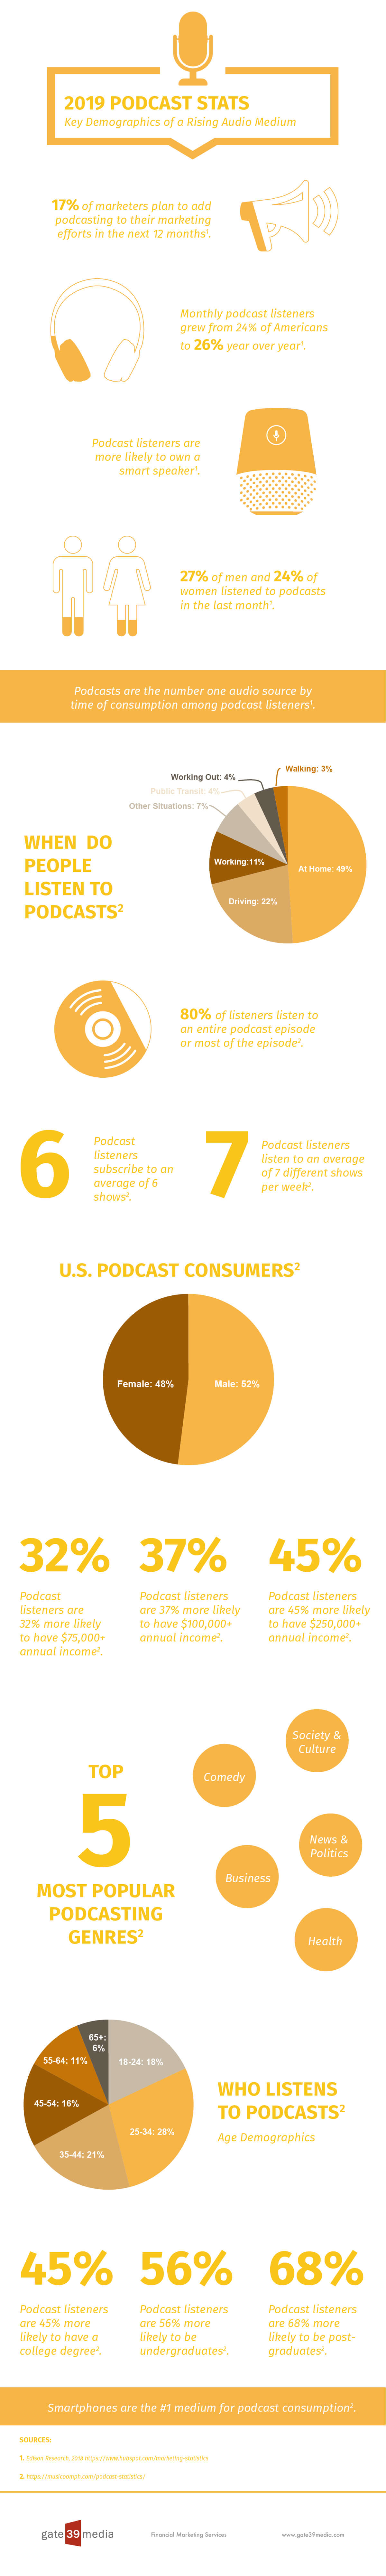 2019 Podcast Statistics: An Infographic